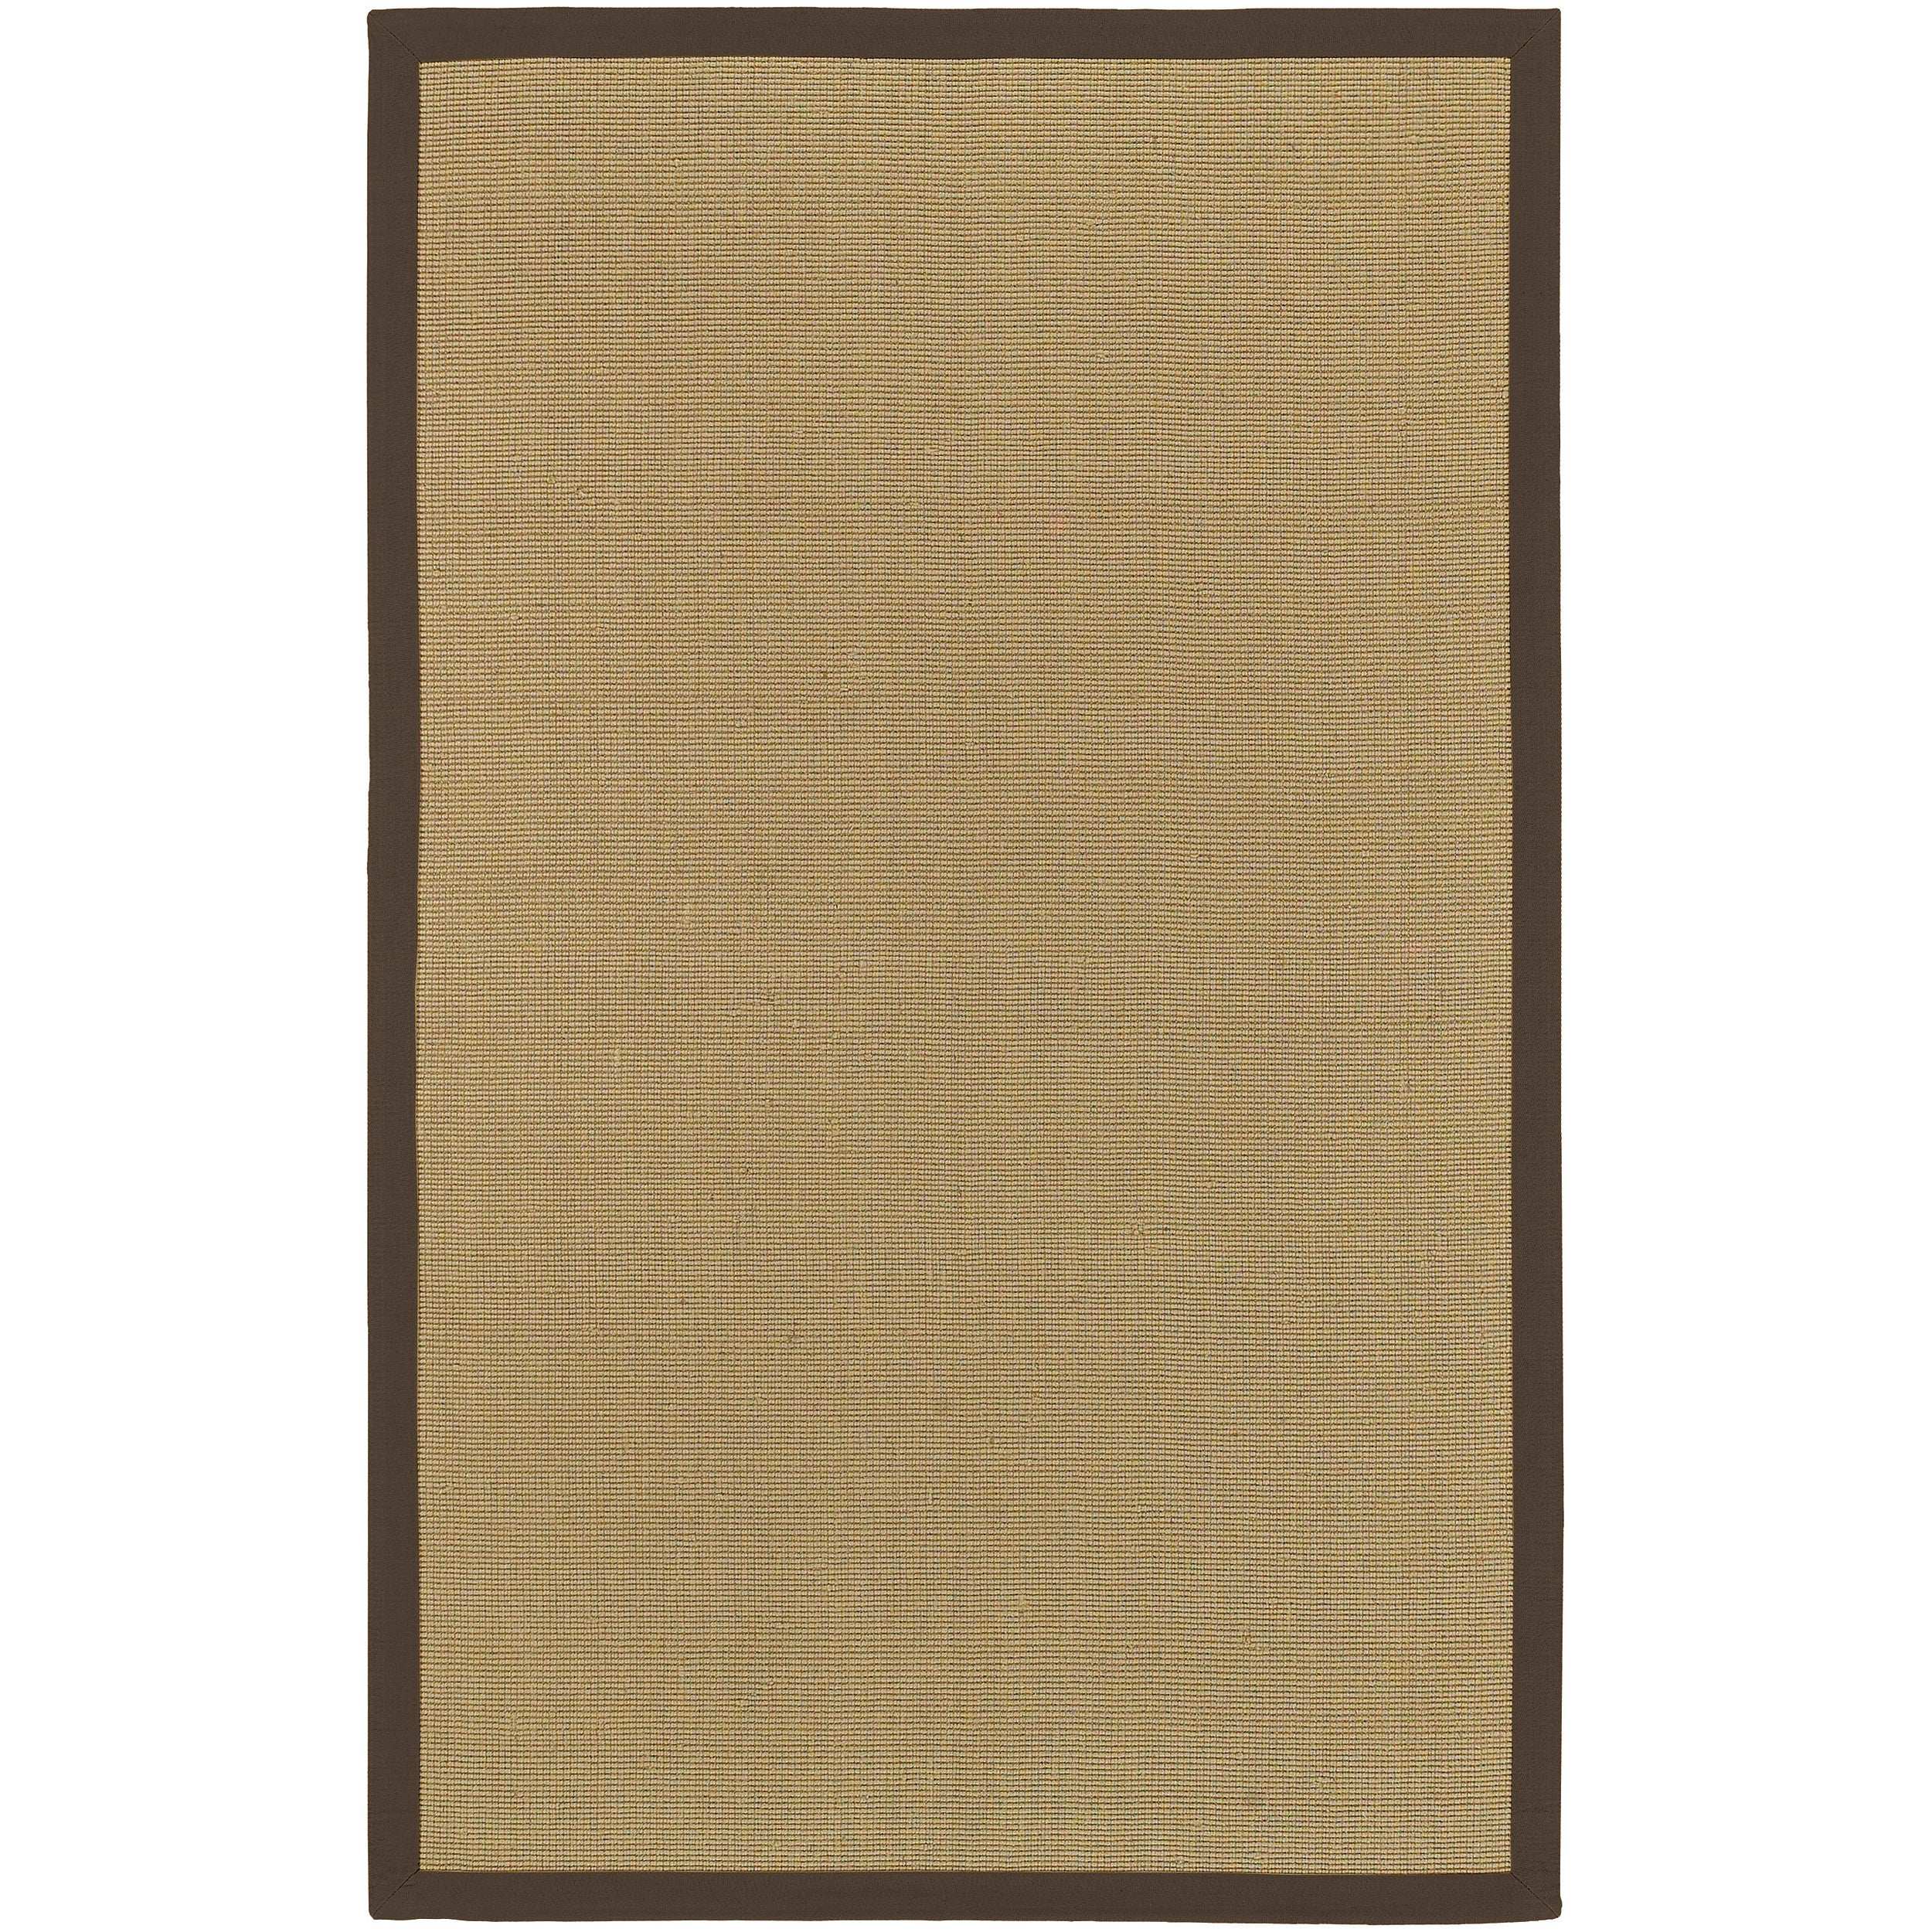 Woven Town Chocolate Sisal with Cotton Border Rug (9' x 12') - Thumbnail 0